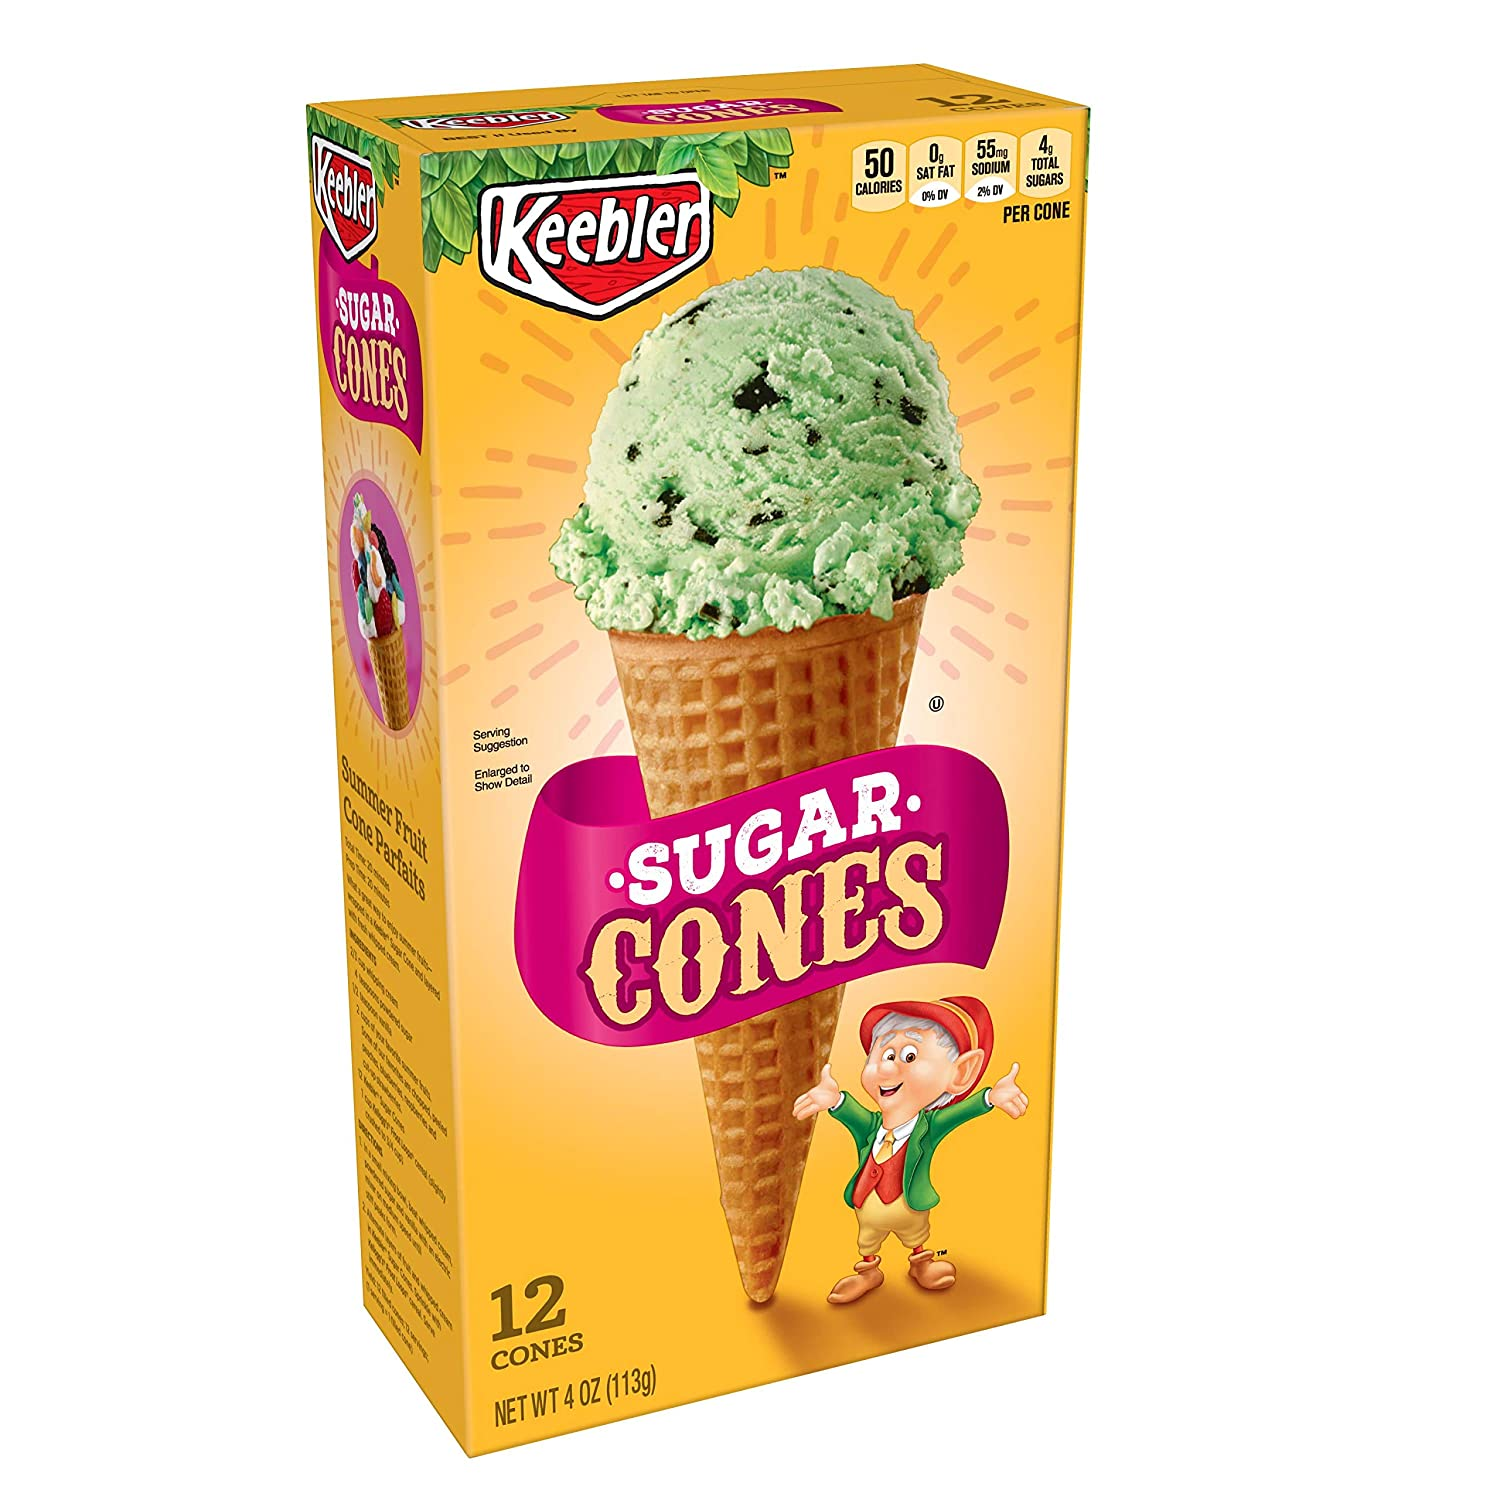 Keebler Ice Cream Cones, Sugar, 4 oz (12 ct)